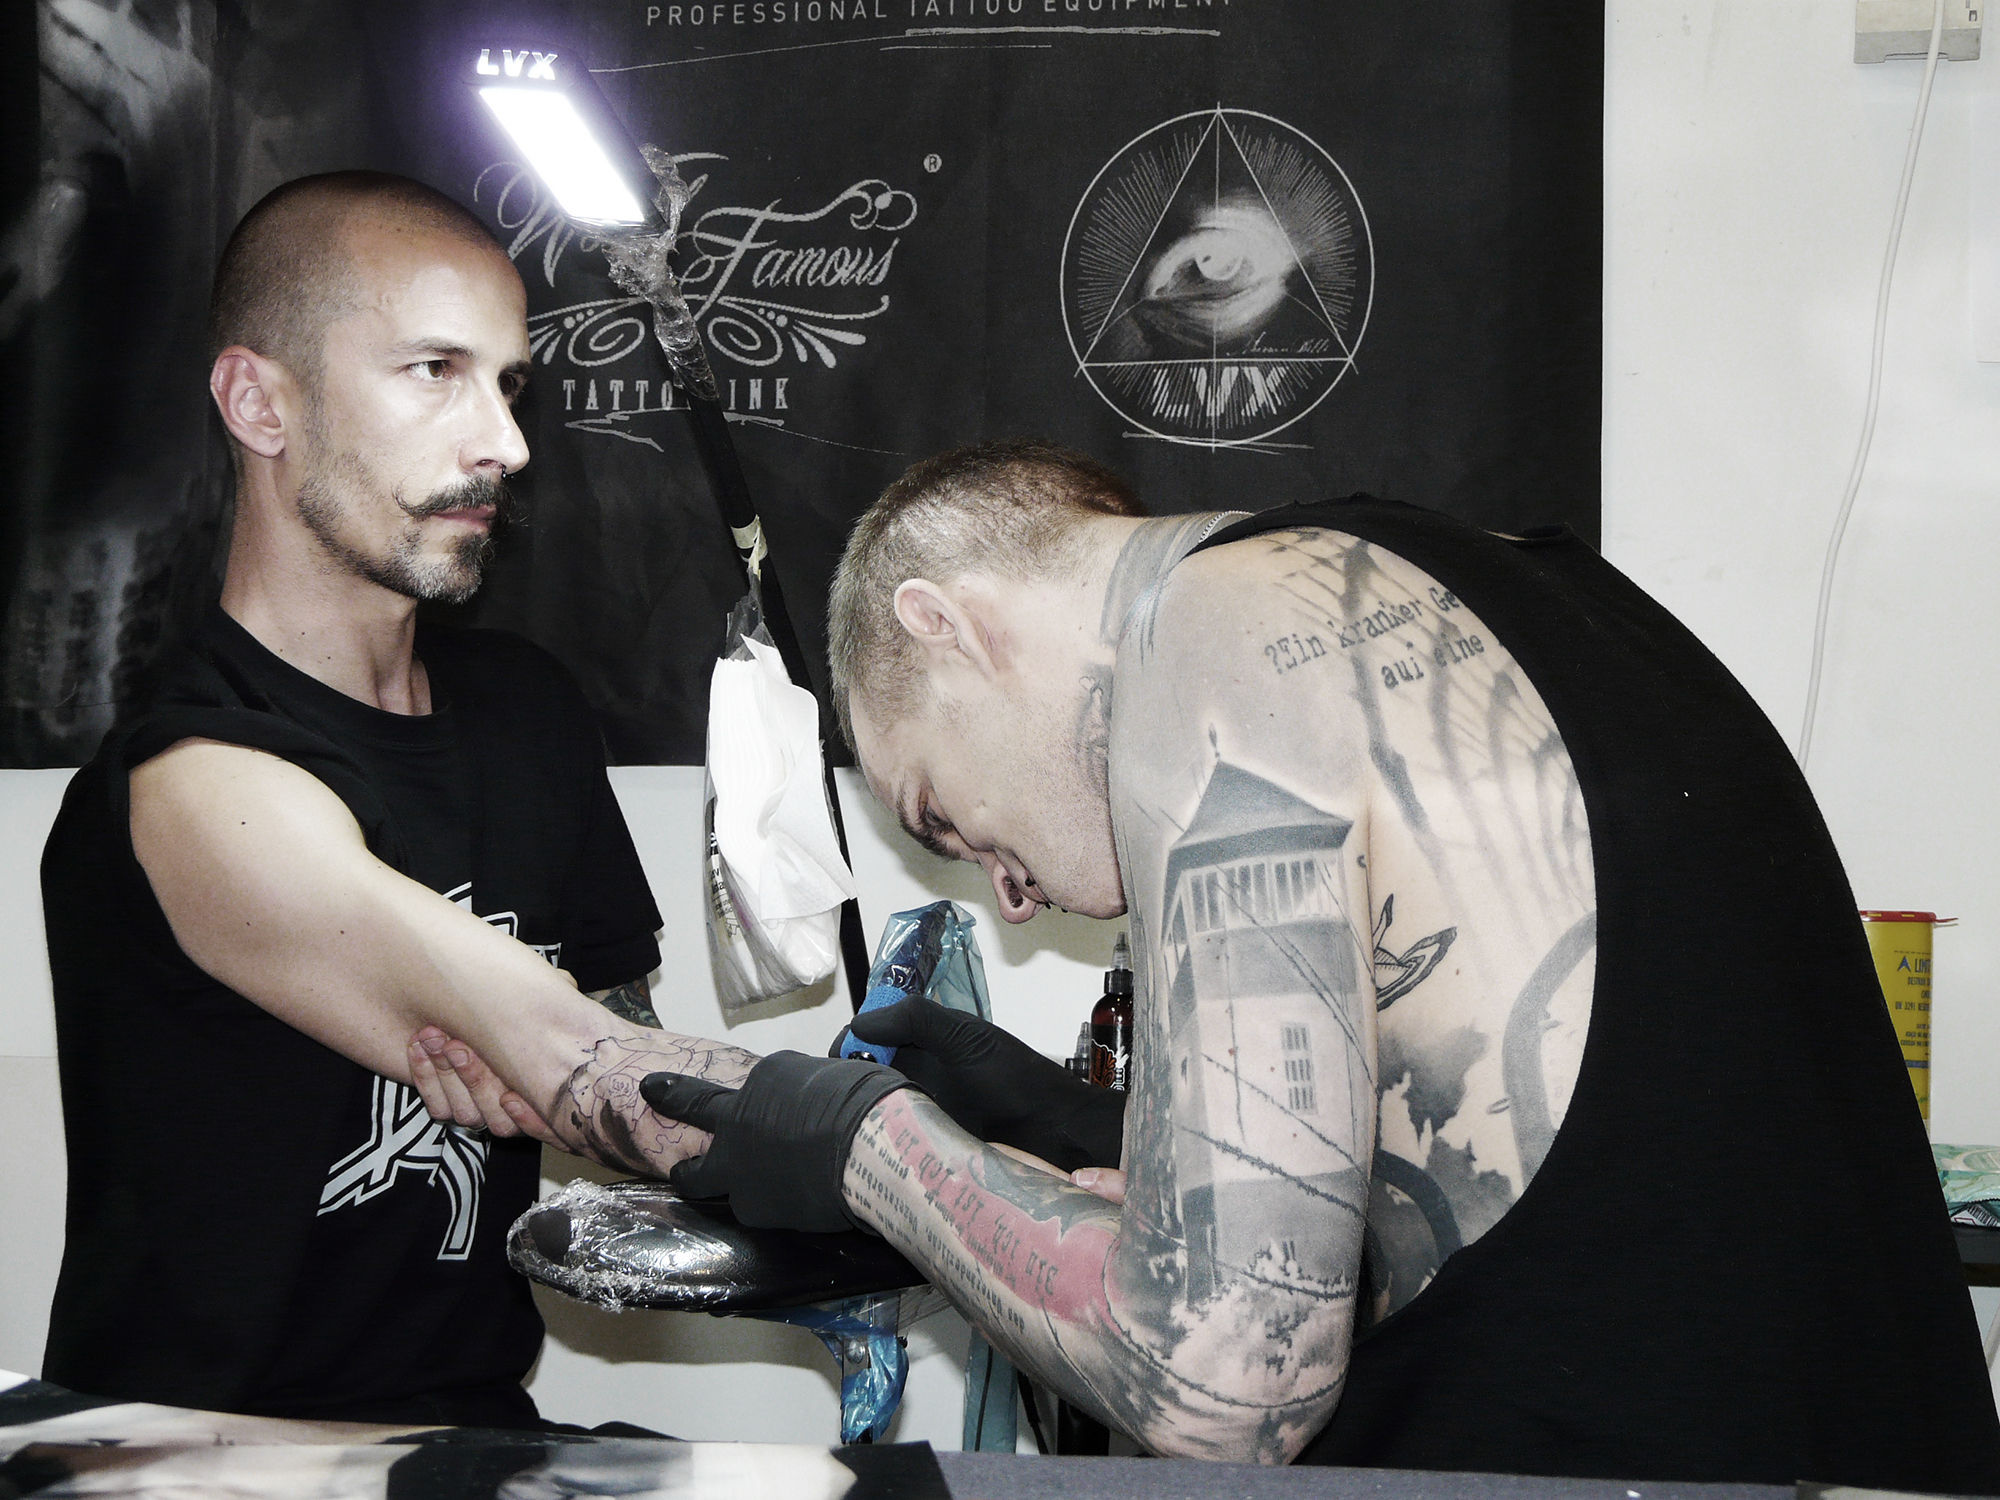 Neon Judas tattooing client at a tattoo convention